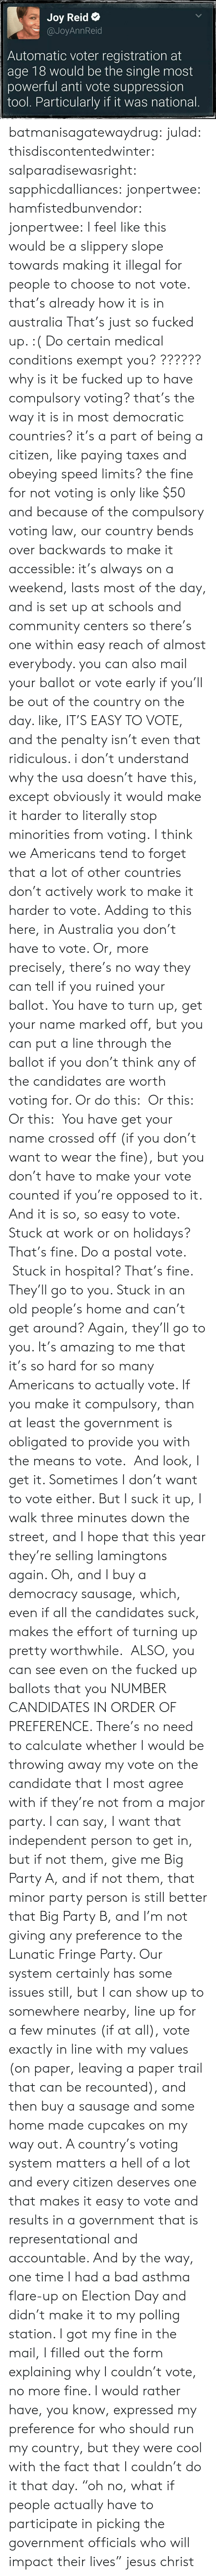 "Bad, Community, and Jesus: Joy Reid  @JoyAnnReid  Automatic voter registration at  age 18 would be the single most  powerful anti vote suppression  tool. Particularly if it was national batmanisagatewaydrug:  julad:  thisdiscontentedwinter:  salparadisewasright:  sapphicdalliances:  jonpertwee:  hamfistedbunvendor:   jonpertwee: I feel like this would be a slippery slope towards making it illegal for people to choose to not vote. that's already how it is in australia   That's just so fucked up. :( Do certain medical conditions exempt you?  ?????? why is it be fucked up to have compulsory voting? that's the way it is in most democratic countries? it's a part of being a citizen, like paying taxes and obeying speed limits? the fine for not voting is only like $50 and because of the compulsory voting law, our country bends over backwards to make it accessible: it's always on a weekend, lasts most of the day, and is set up at schools and community centers so there's one within easy reach of almost everybody. you can also mail your ballot or vote early if you'll be out of the country on the day. like, IT'S EASY TO VOTE, and the penalty isn't even that ridiculous. i don't understand why the usa doesn't have this, except obviously it would make it harder to literally stop minorities from voting.  I think we Americans tend to forget that a lot of other countries don't actively work to make it harder to vote.  Adding to this here, in Australia you don't have to vote. Or, more precisely, there's no way they can tell if you ruined your ballot. You have to turn up, get your name marked off, but you can put a line through the ballot if you don't think any of the candidates are worth voting for. Or do this:  Or this:   Or this:  You have get your name crossed off (if you don't want to wear the fine), but you don't have to make your vote counted if you're opposed to it.  And it is so, so easy to vote. Stuck at work or on holidays? That's fine. Do a postal vote.  Stuck in hospital? That's fine. They'll go to you. Stuck in an old people's home and can't get around? Again, they'll go to you. It's amazing to me that it's so hard for so many Americans to actually vote. If you make it compulsory, than at least the government is obligated to provide you with the means to vote.  And look, I get it. Sometimes I don't want to vote either. But I suck it up, I walk three minutes down the street, and I hope that this year they're selling lamingtons again. Oh, and I buy a democracy sausage, which, even if all the candidates suck, makes the effort of turning up pretty worthwhile.   ALSO, you can see even on the fucked up ballots that you NUMBER  CANDIDATES IN ORDER OF PREFERENCE. There's no need to calculate whether I would be throwing away my vote on the candidate that I most agree with if they're not from a major party. I can say, I want that independent person to get in, but if not them, give me Big Party A, and if not them, that minor party person is still better that Big Party B, and I'm not giving any preference to the Lunatic Fringe Party.  Our system certainly has some issues still, but I can show up to somewhere nearby, line up for a few minutes (if at all), vote exactly in line with my values (on paper, leaving a paper trail that can be recounted), and then buy a sausage and some home made cupcakes on my way out.  A country's voting system matters a hell of a lot and every citizen deserves one that makes it easy to vote and results in a government that is representational and accountable.  And by the way, one time I had a bad asthma flare-up on Election Day and didn't make it to my polling station. I got my fine in the mail, I filled out the form explaining why I couldn't vote, no more fine. I would rather have, you know, expressed my preference for who should run my country, but they were cool with the fact that I couldn't do it that day.  ""oh no, what if people actually have to participate in picking the government officials who will impact their lives"" jesus christ"